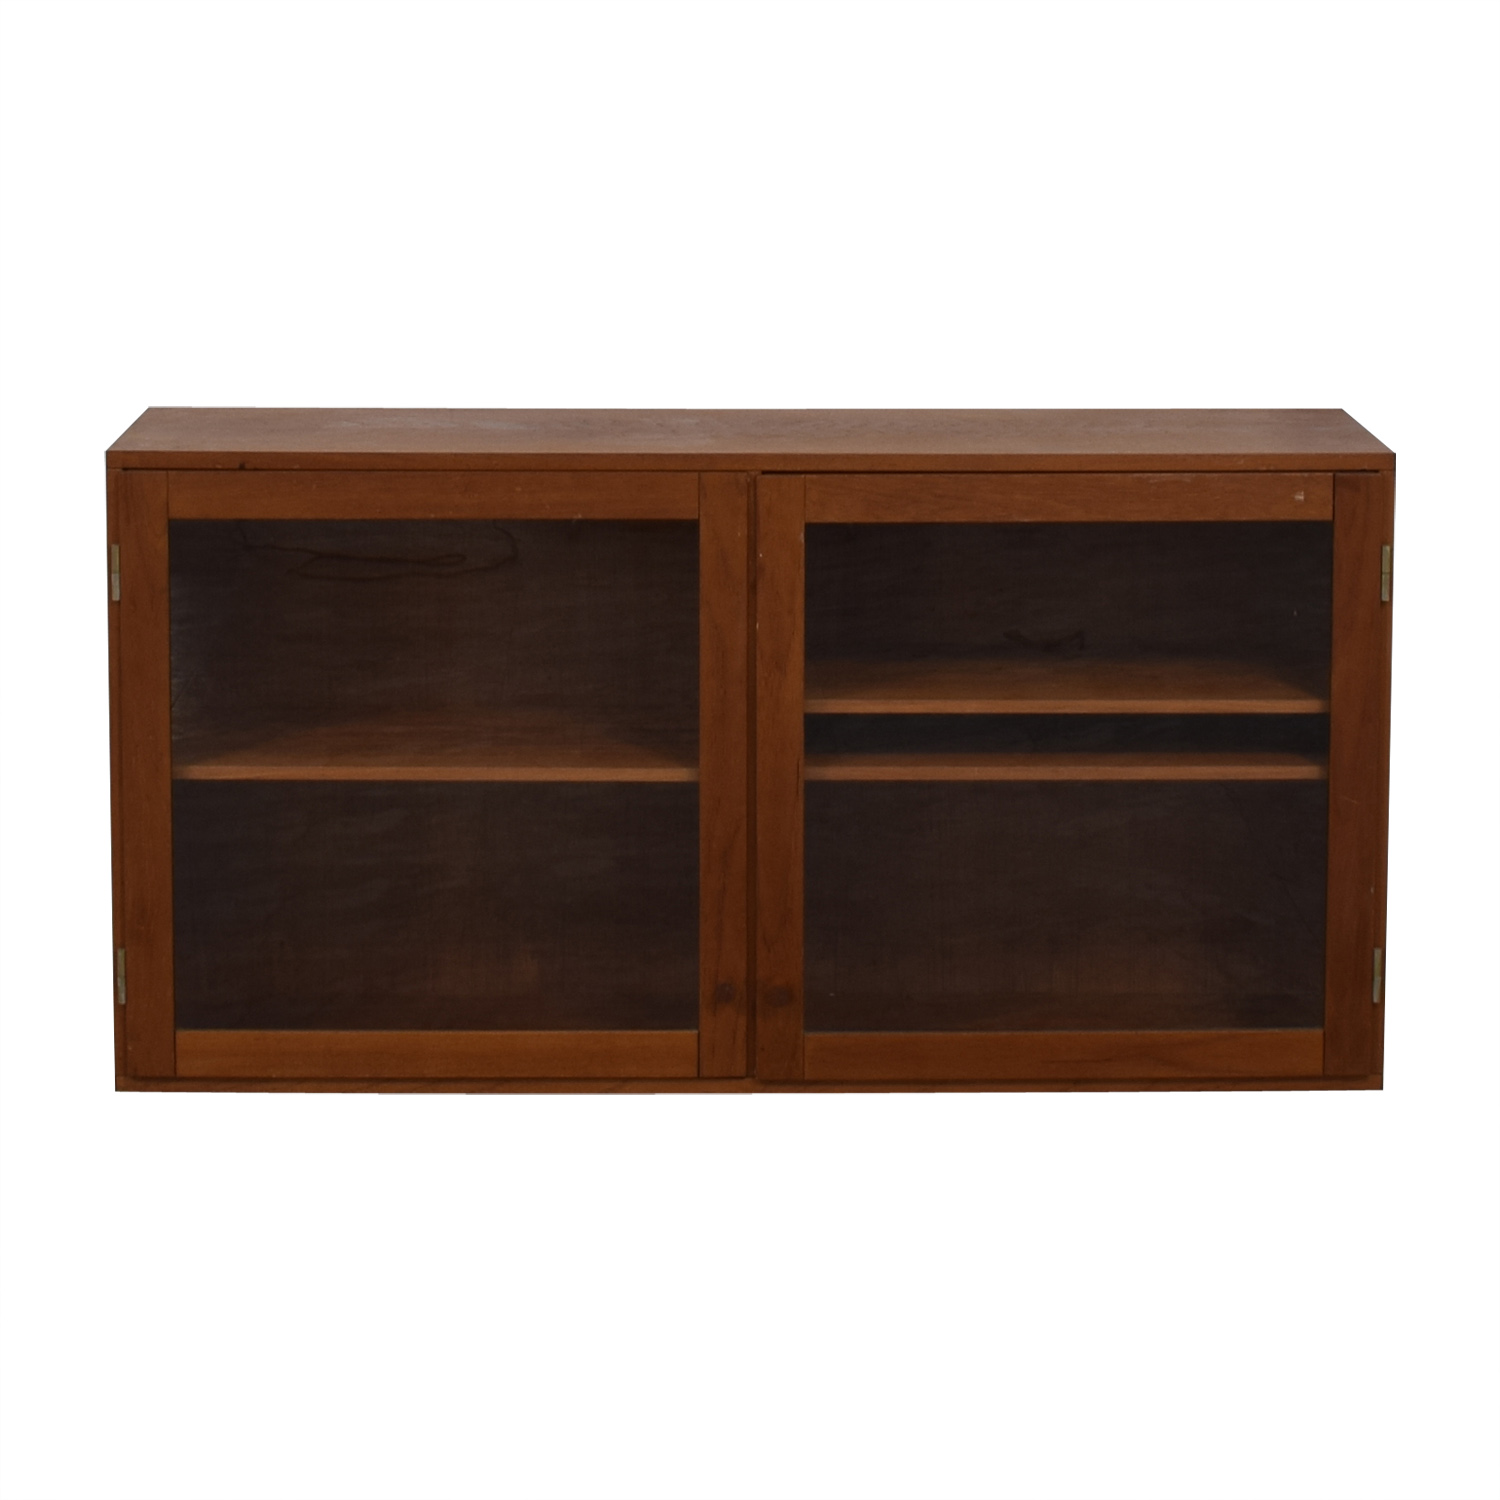 Vintage Wood And Gl Tv Console